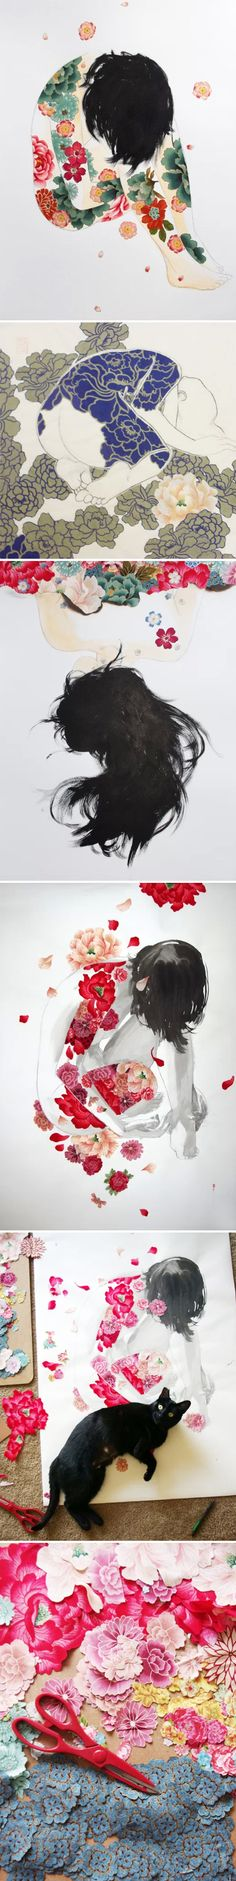 stasia burrington - washy drawings covered in cut fabric flowers <3